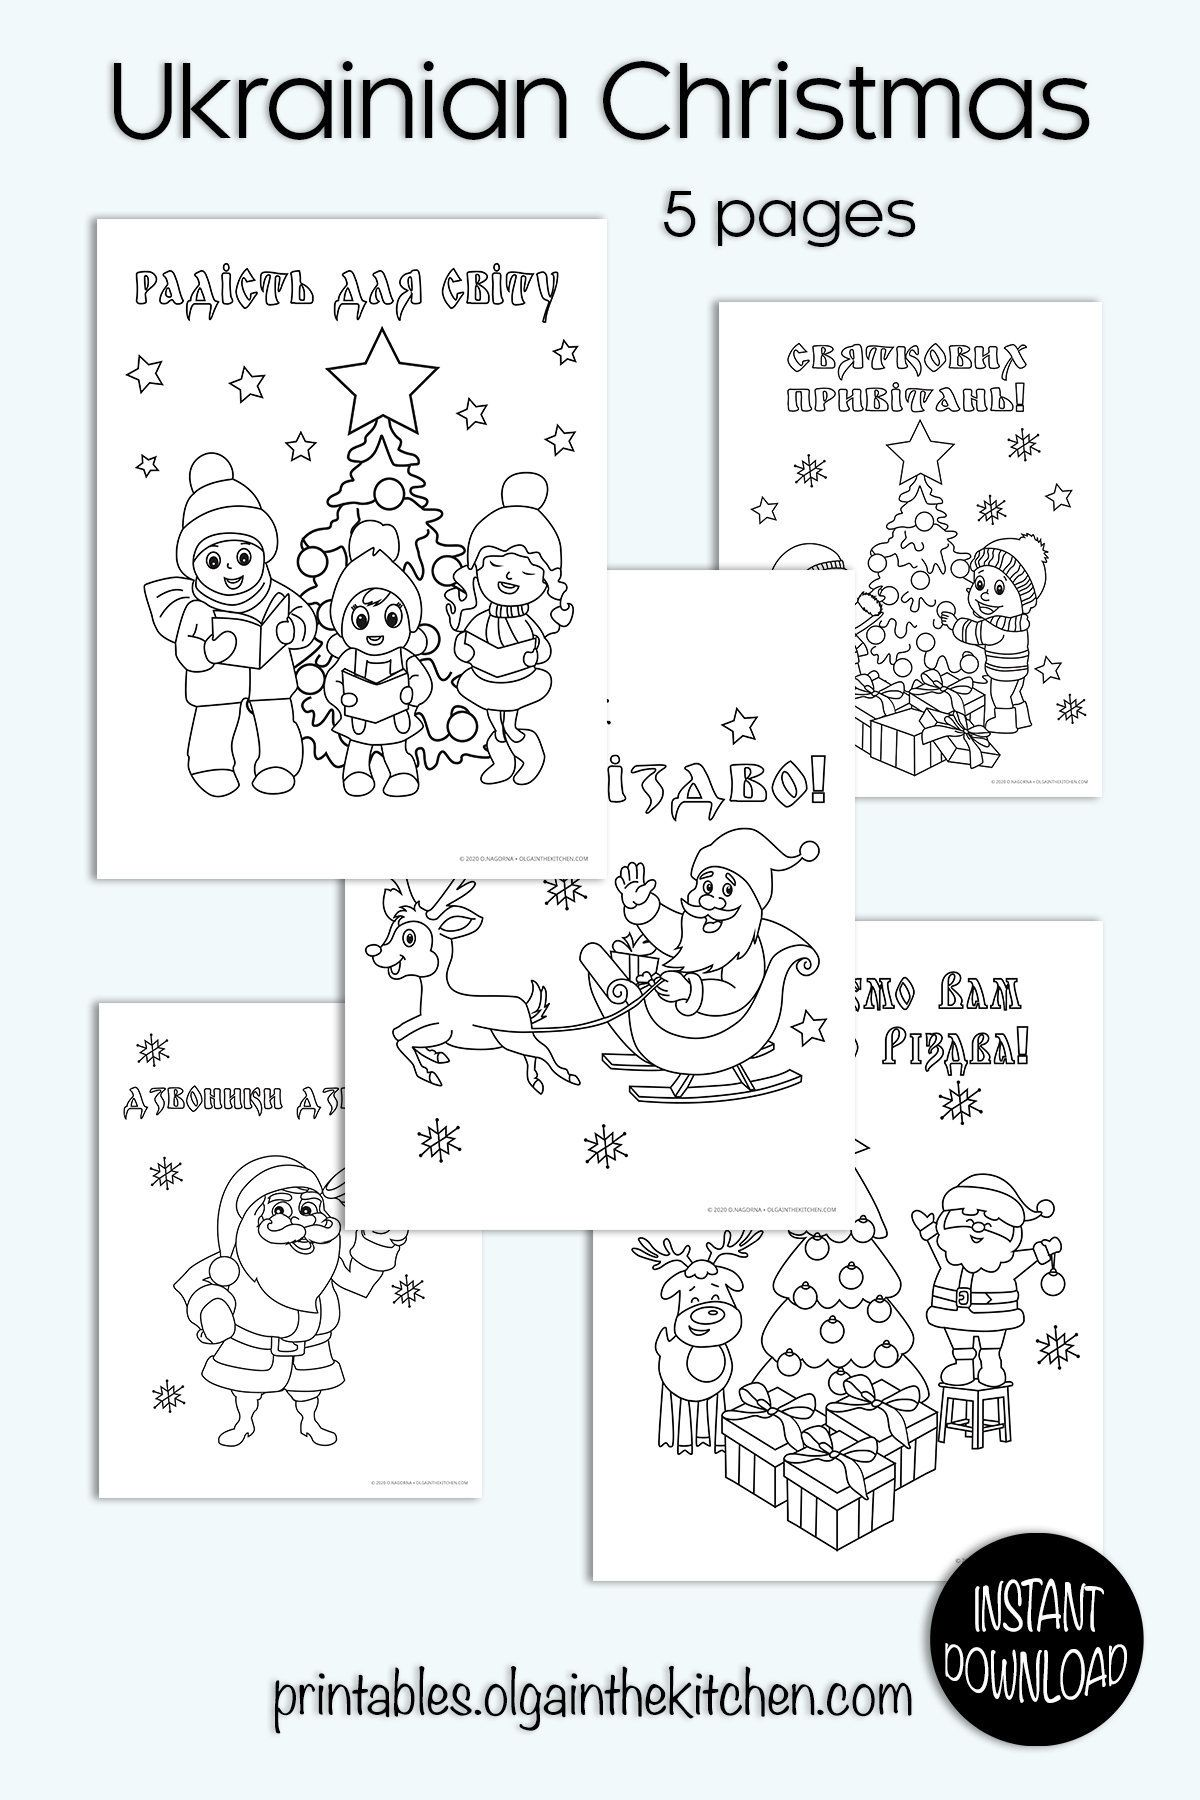 Ukrainian Christmas Coloring Pages 5 Pages Instant Download Etsy Christmas Coloring Pages Christmas Colors Christmas Coloring Books